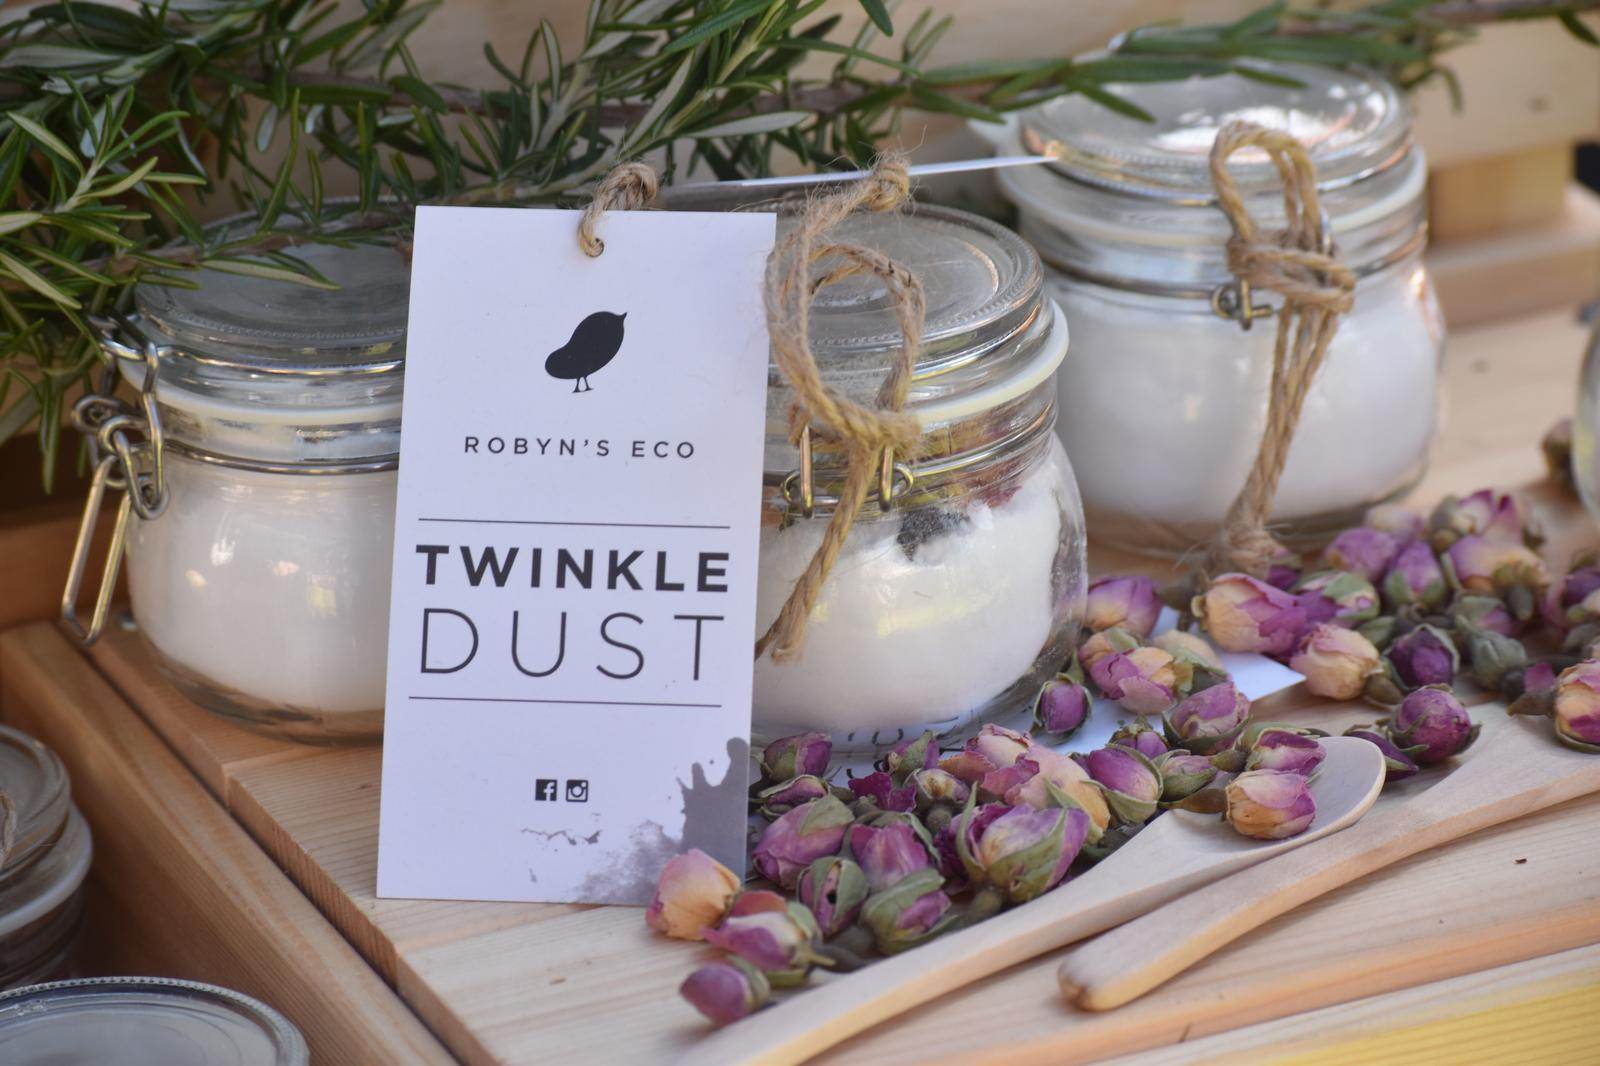 Twinkle dust powerful infused cleaner